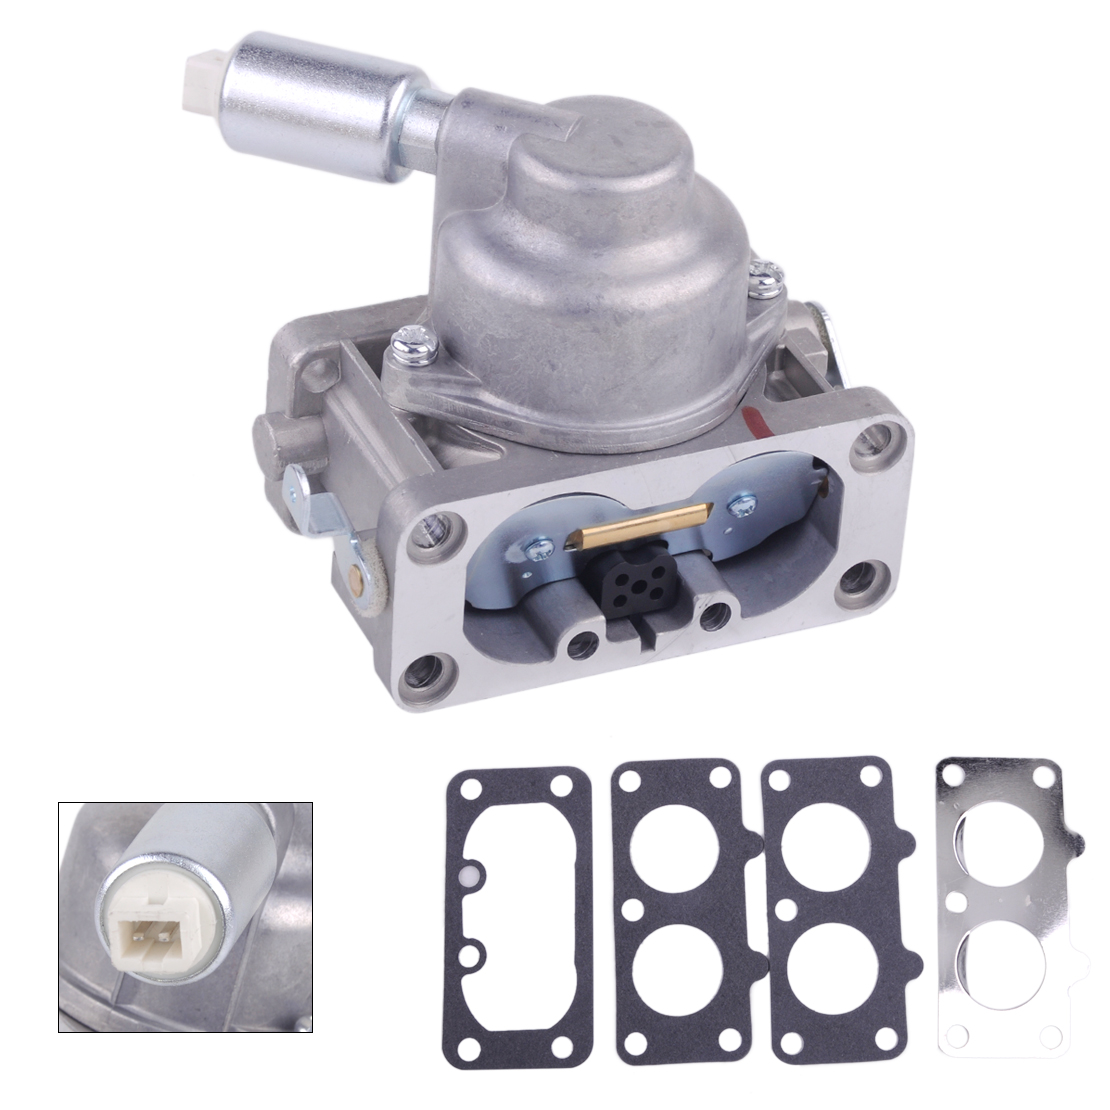 купить LETAOSK Carburetor Carb with Gasket fit for Briggs & Stratton 792295 Replacement по цене 4069.65 рублей